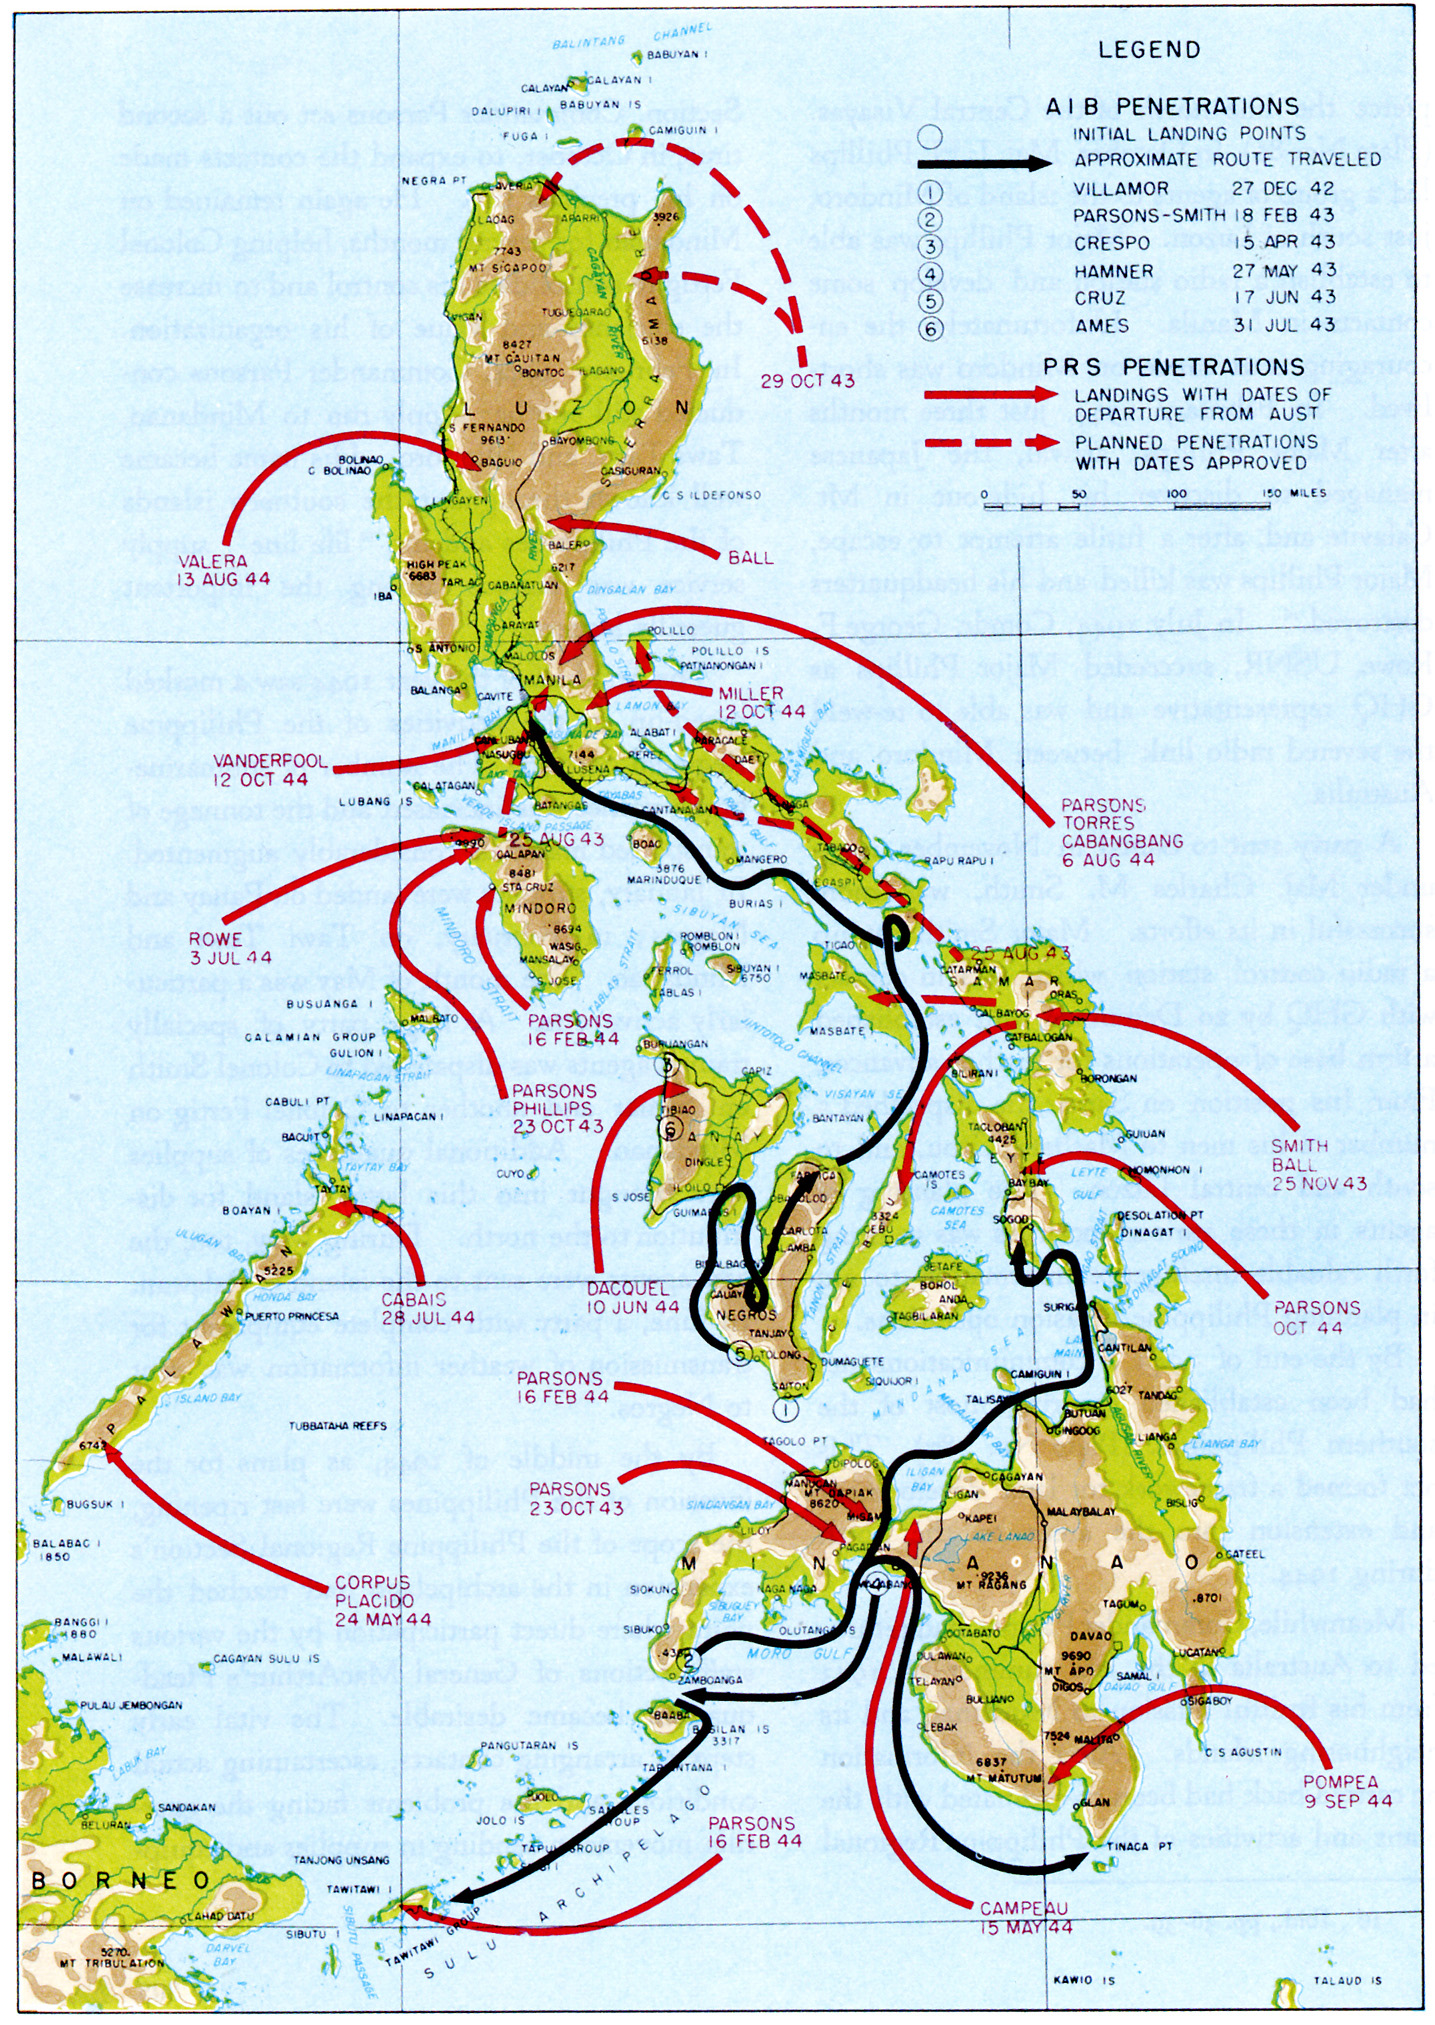 Chapter 10 guerrilla activities in the philippines plate no 86 aib and prs penetrations of the philippines 1943 1945 gumiabroncs Image collections